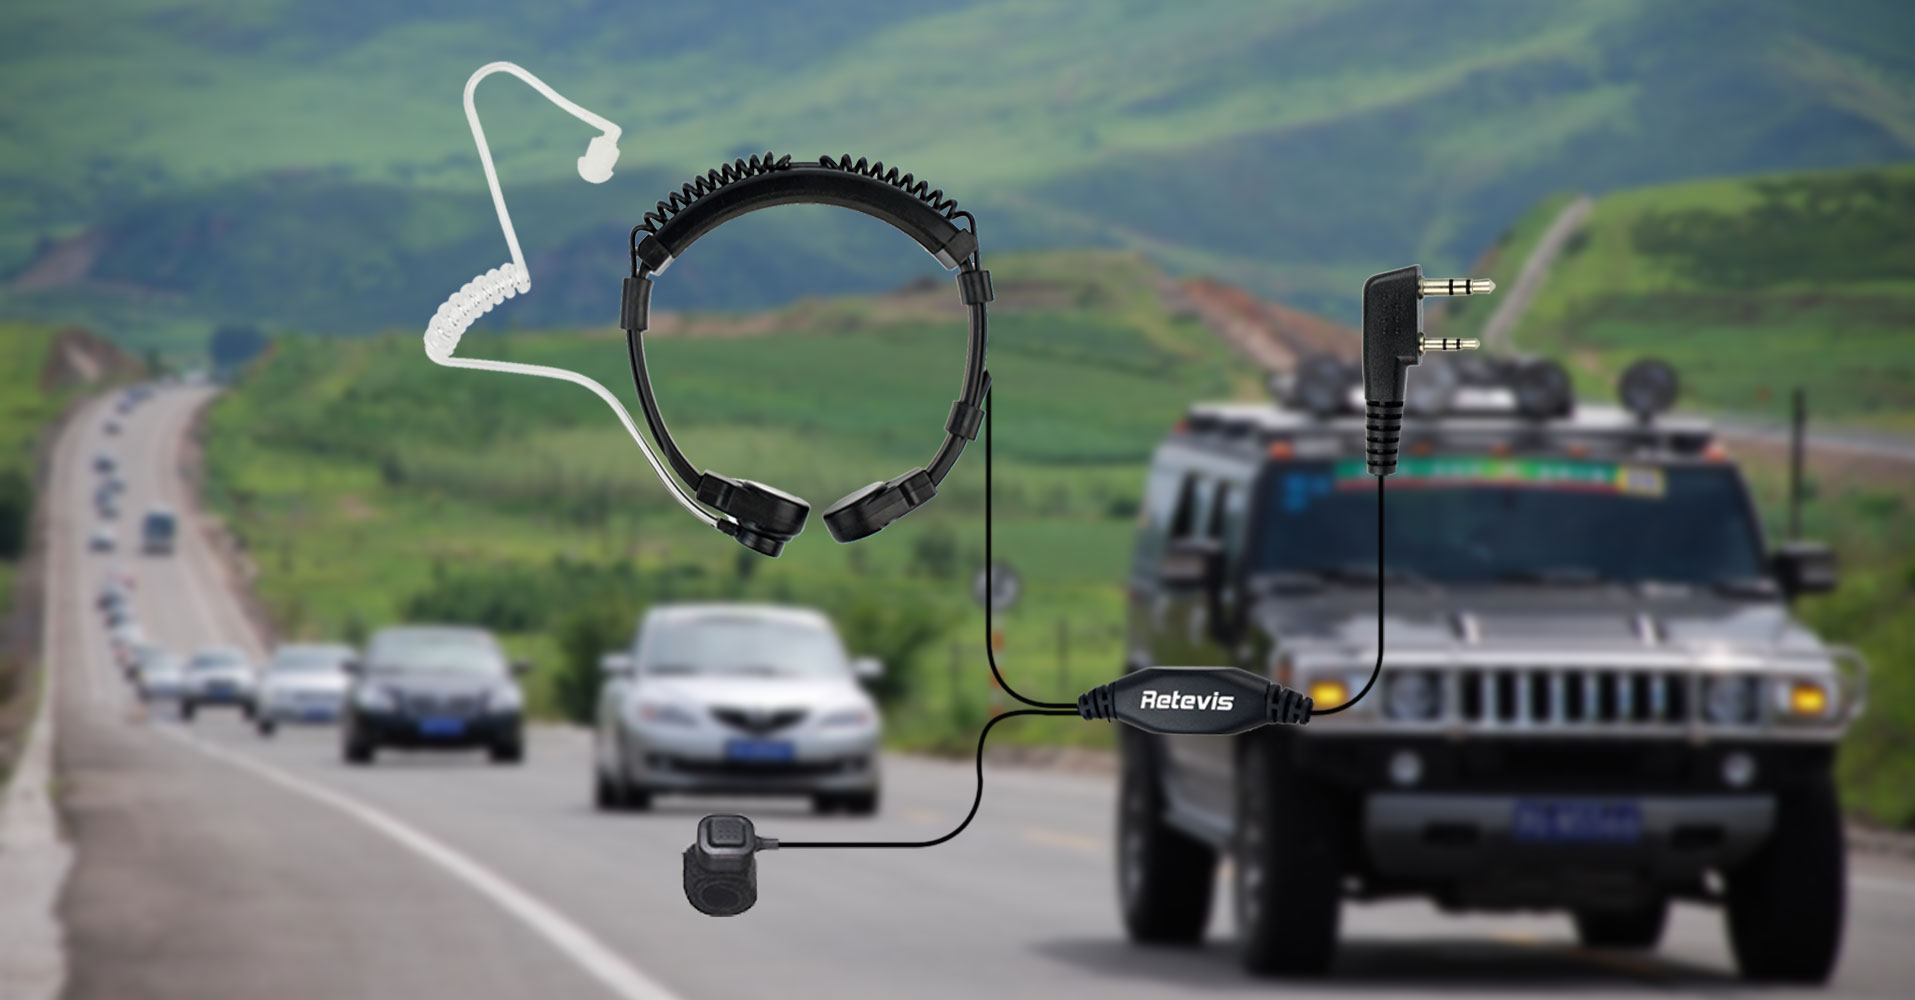 Throat Microphone for self-drive journey